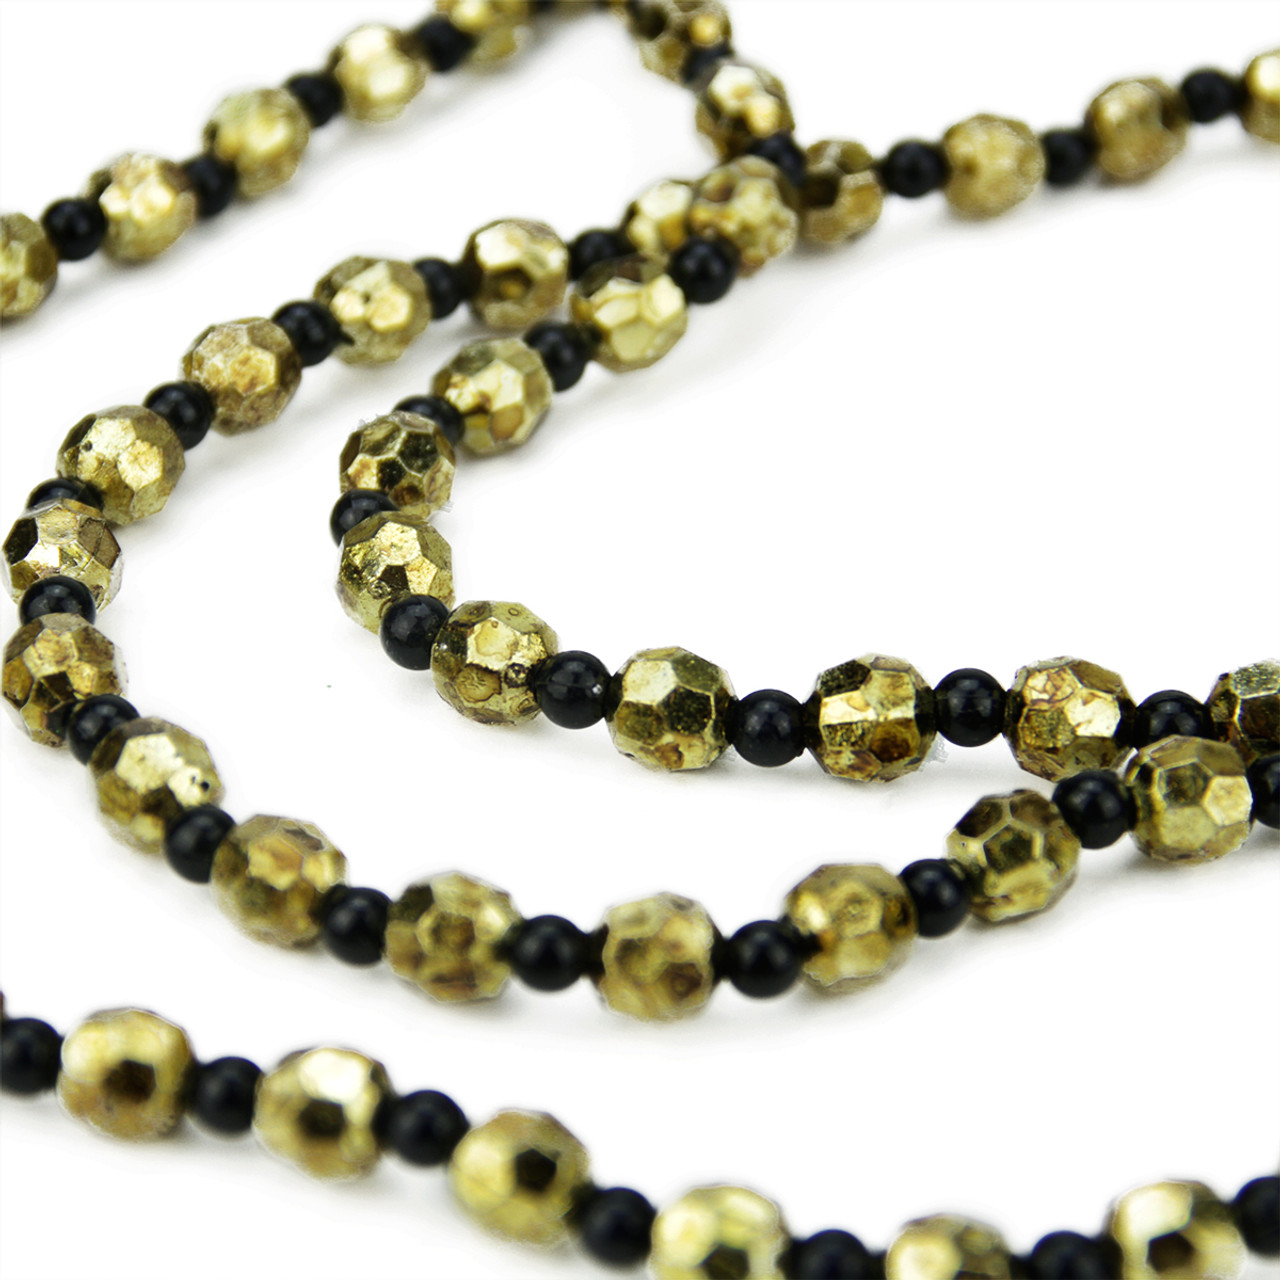 30 elegant contemporary style black and gold beaded christmas garland swag 31464606 - Beaded Christmas Garland